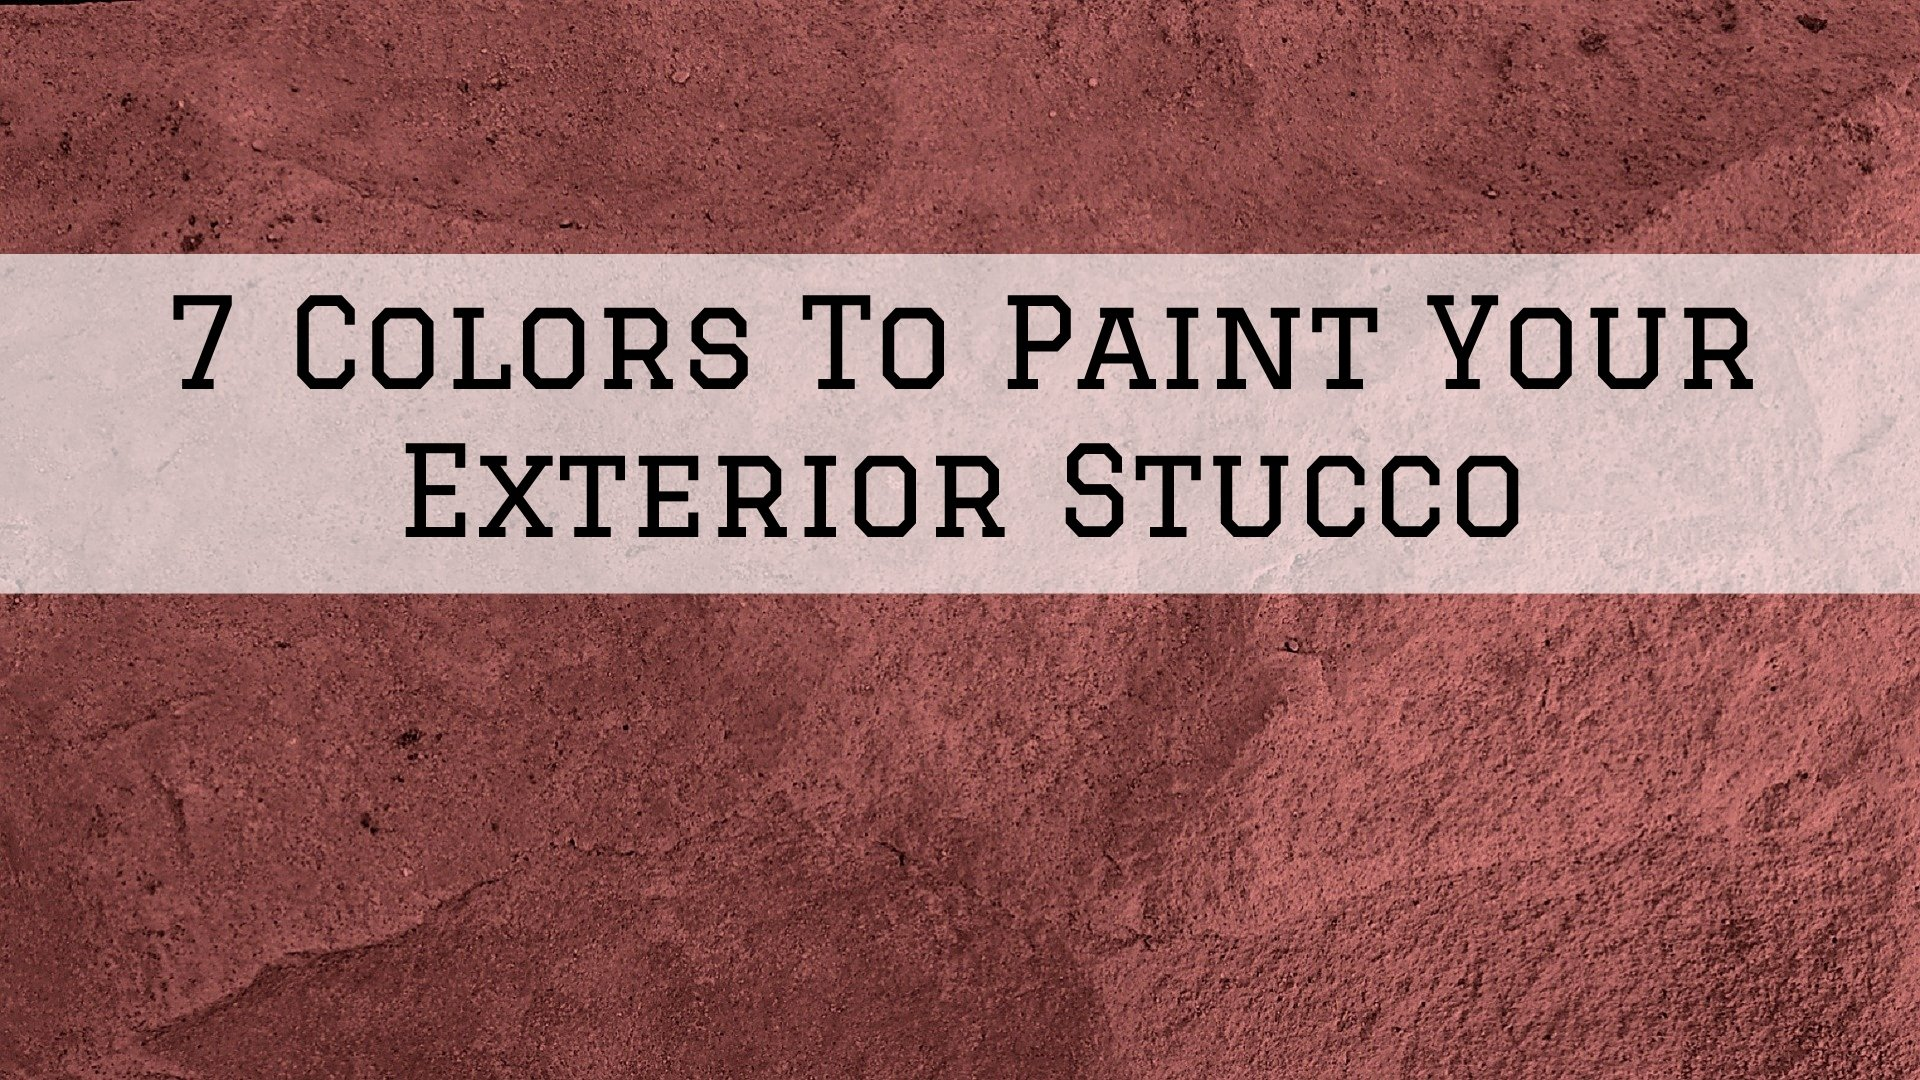 7 Colors To Paint Your Exterior Stucco in Omaha, NE